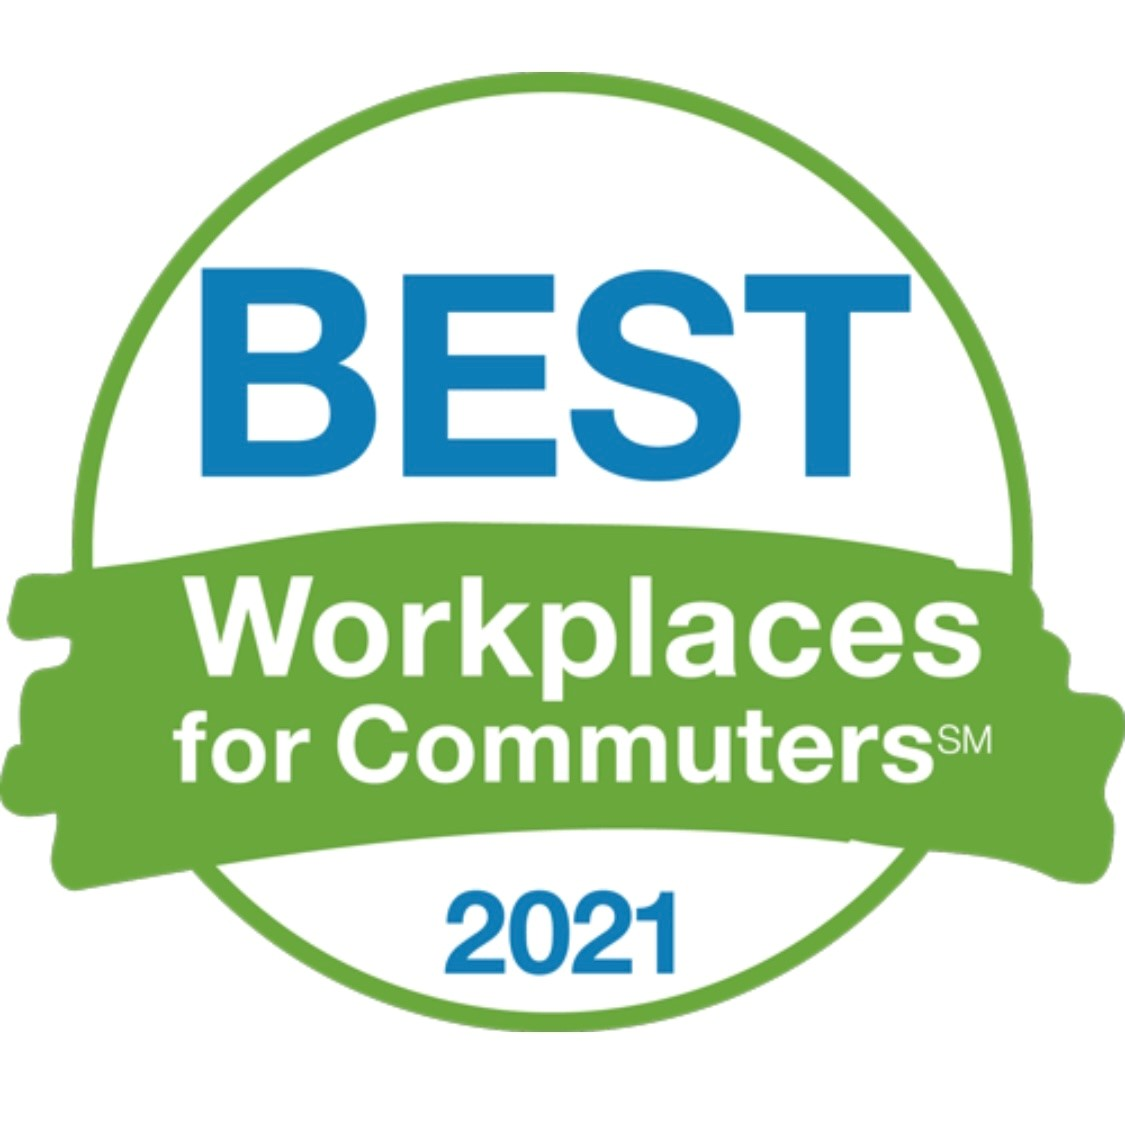 Cal State LA Voted One of the Best Workplaces for Commuters 2017-2021